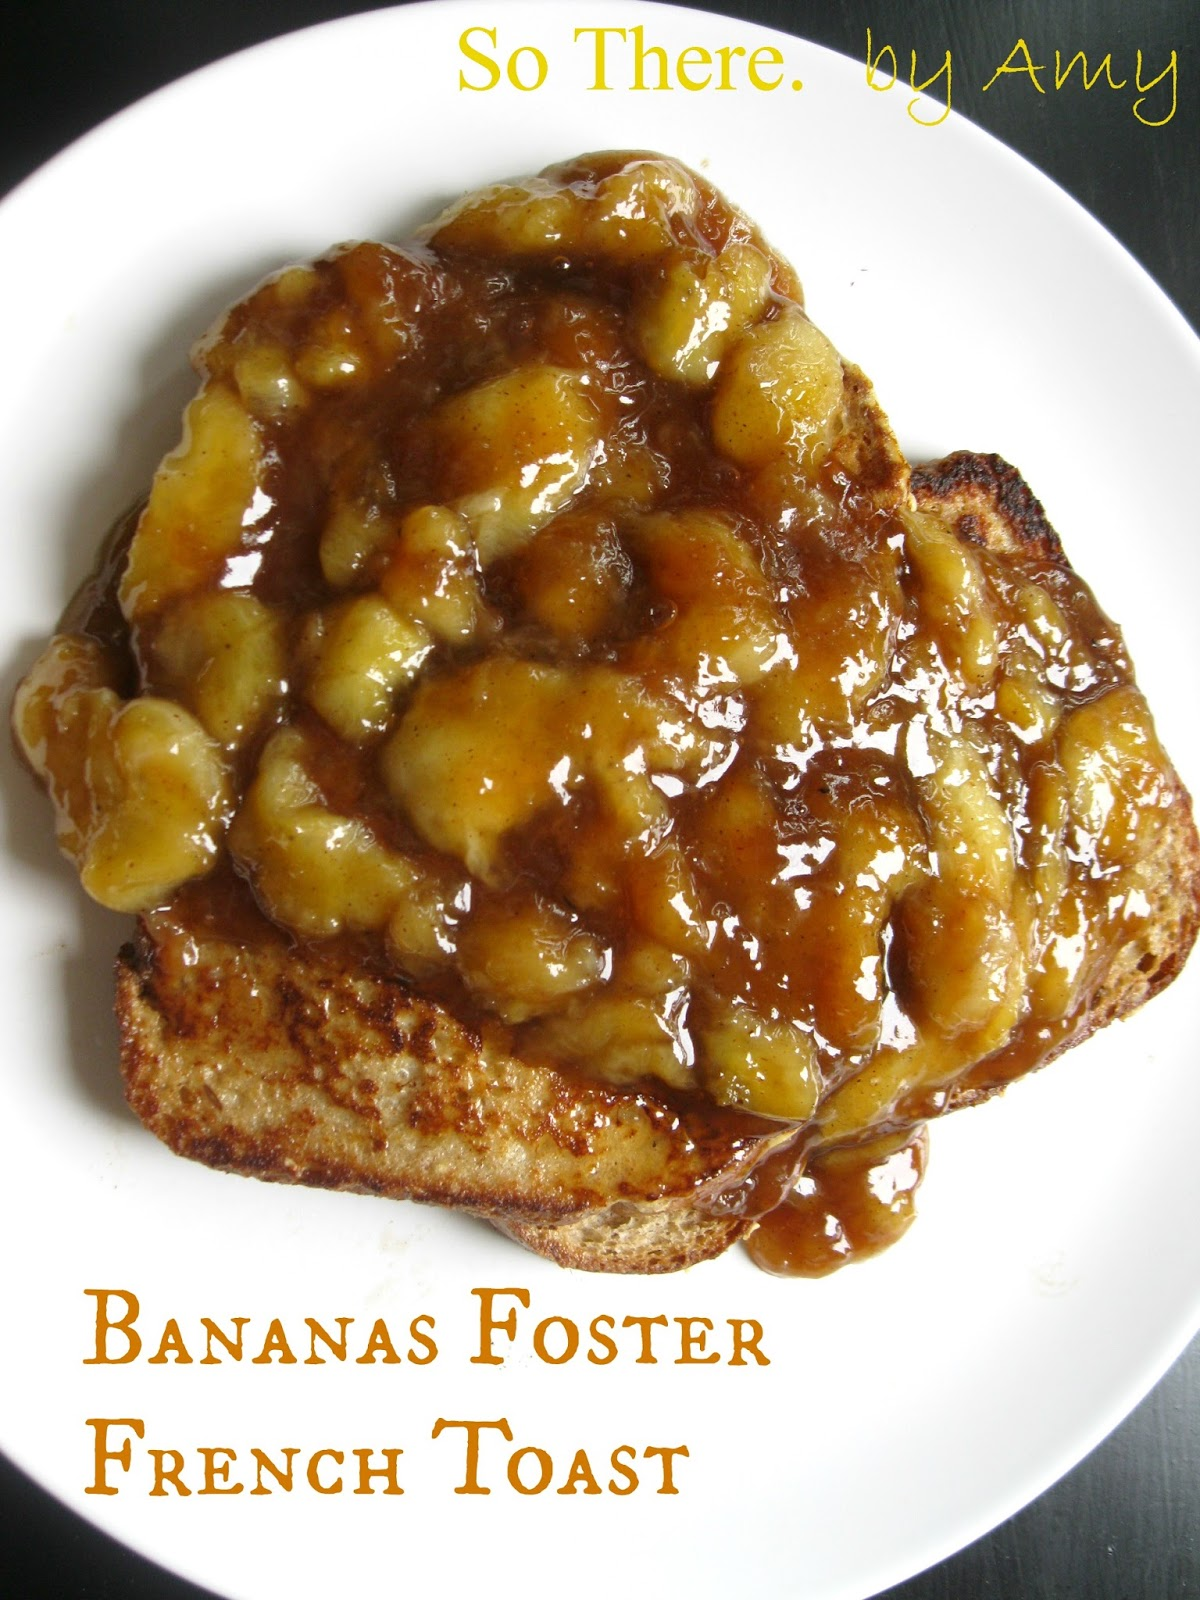 So There.: Bananas Foster French Toast